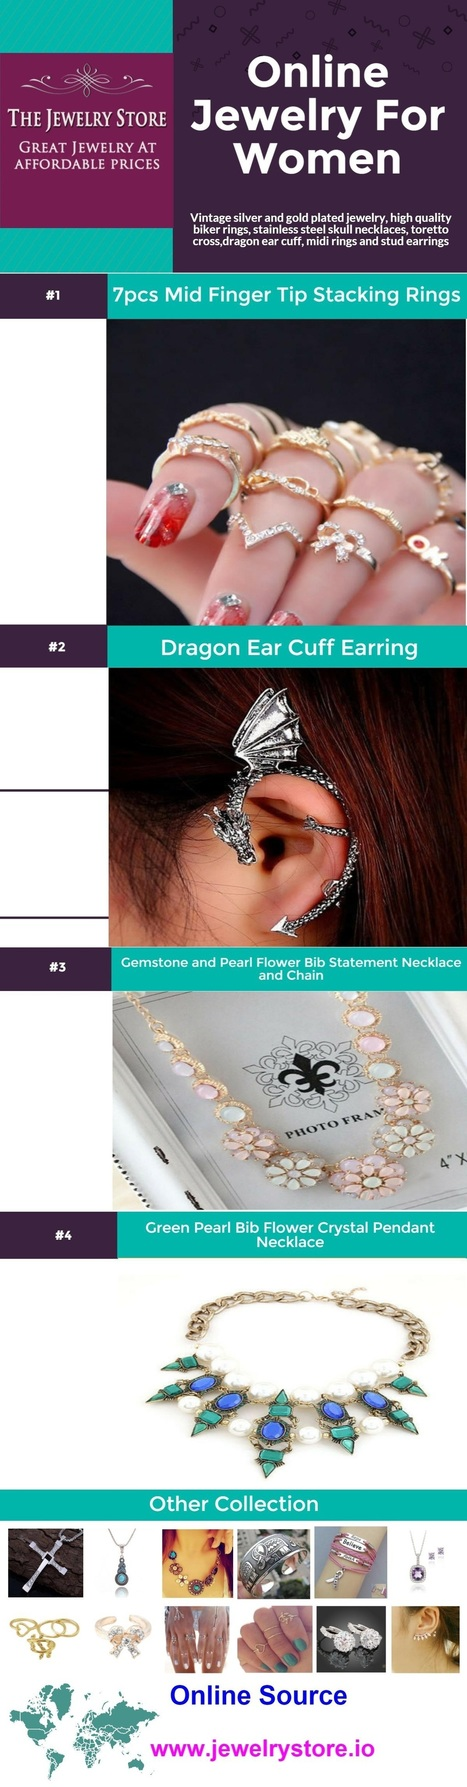 Online Jewelry For Women Infographic   Online Shopping   Scoop.it